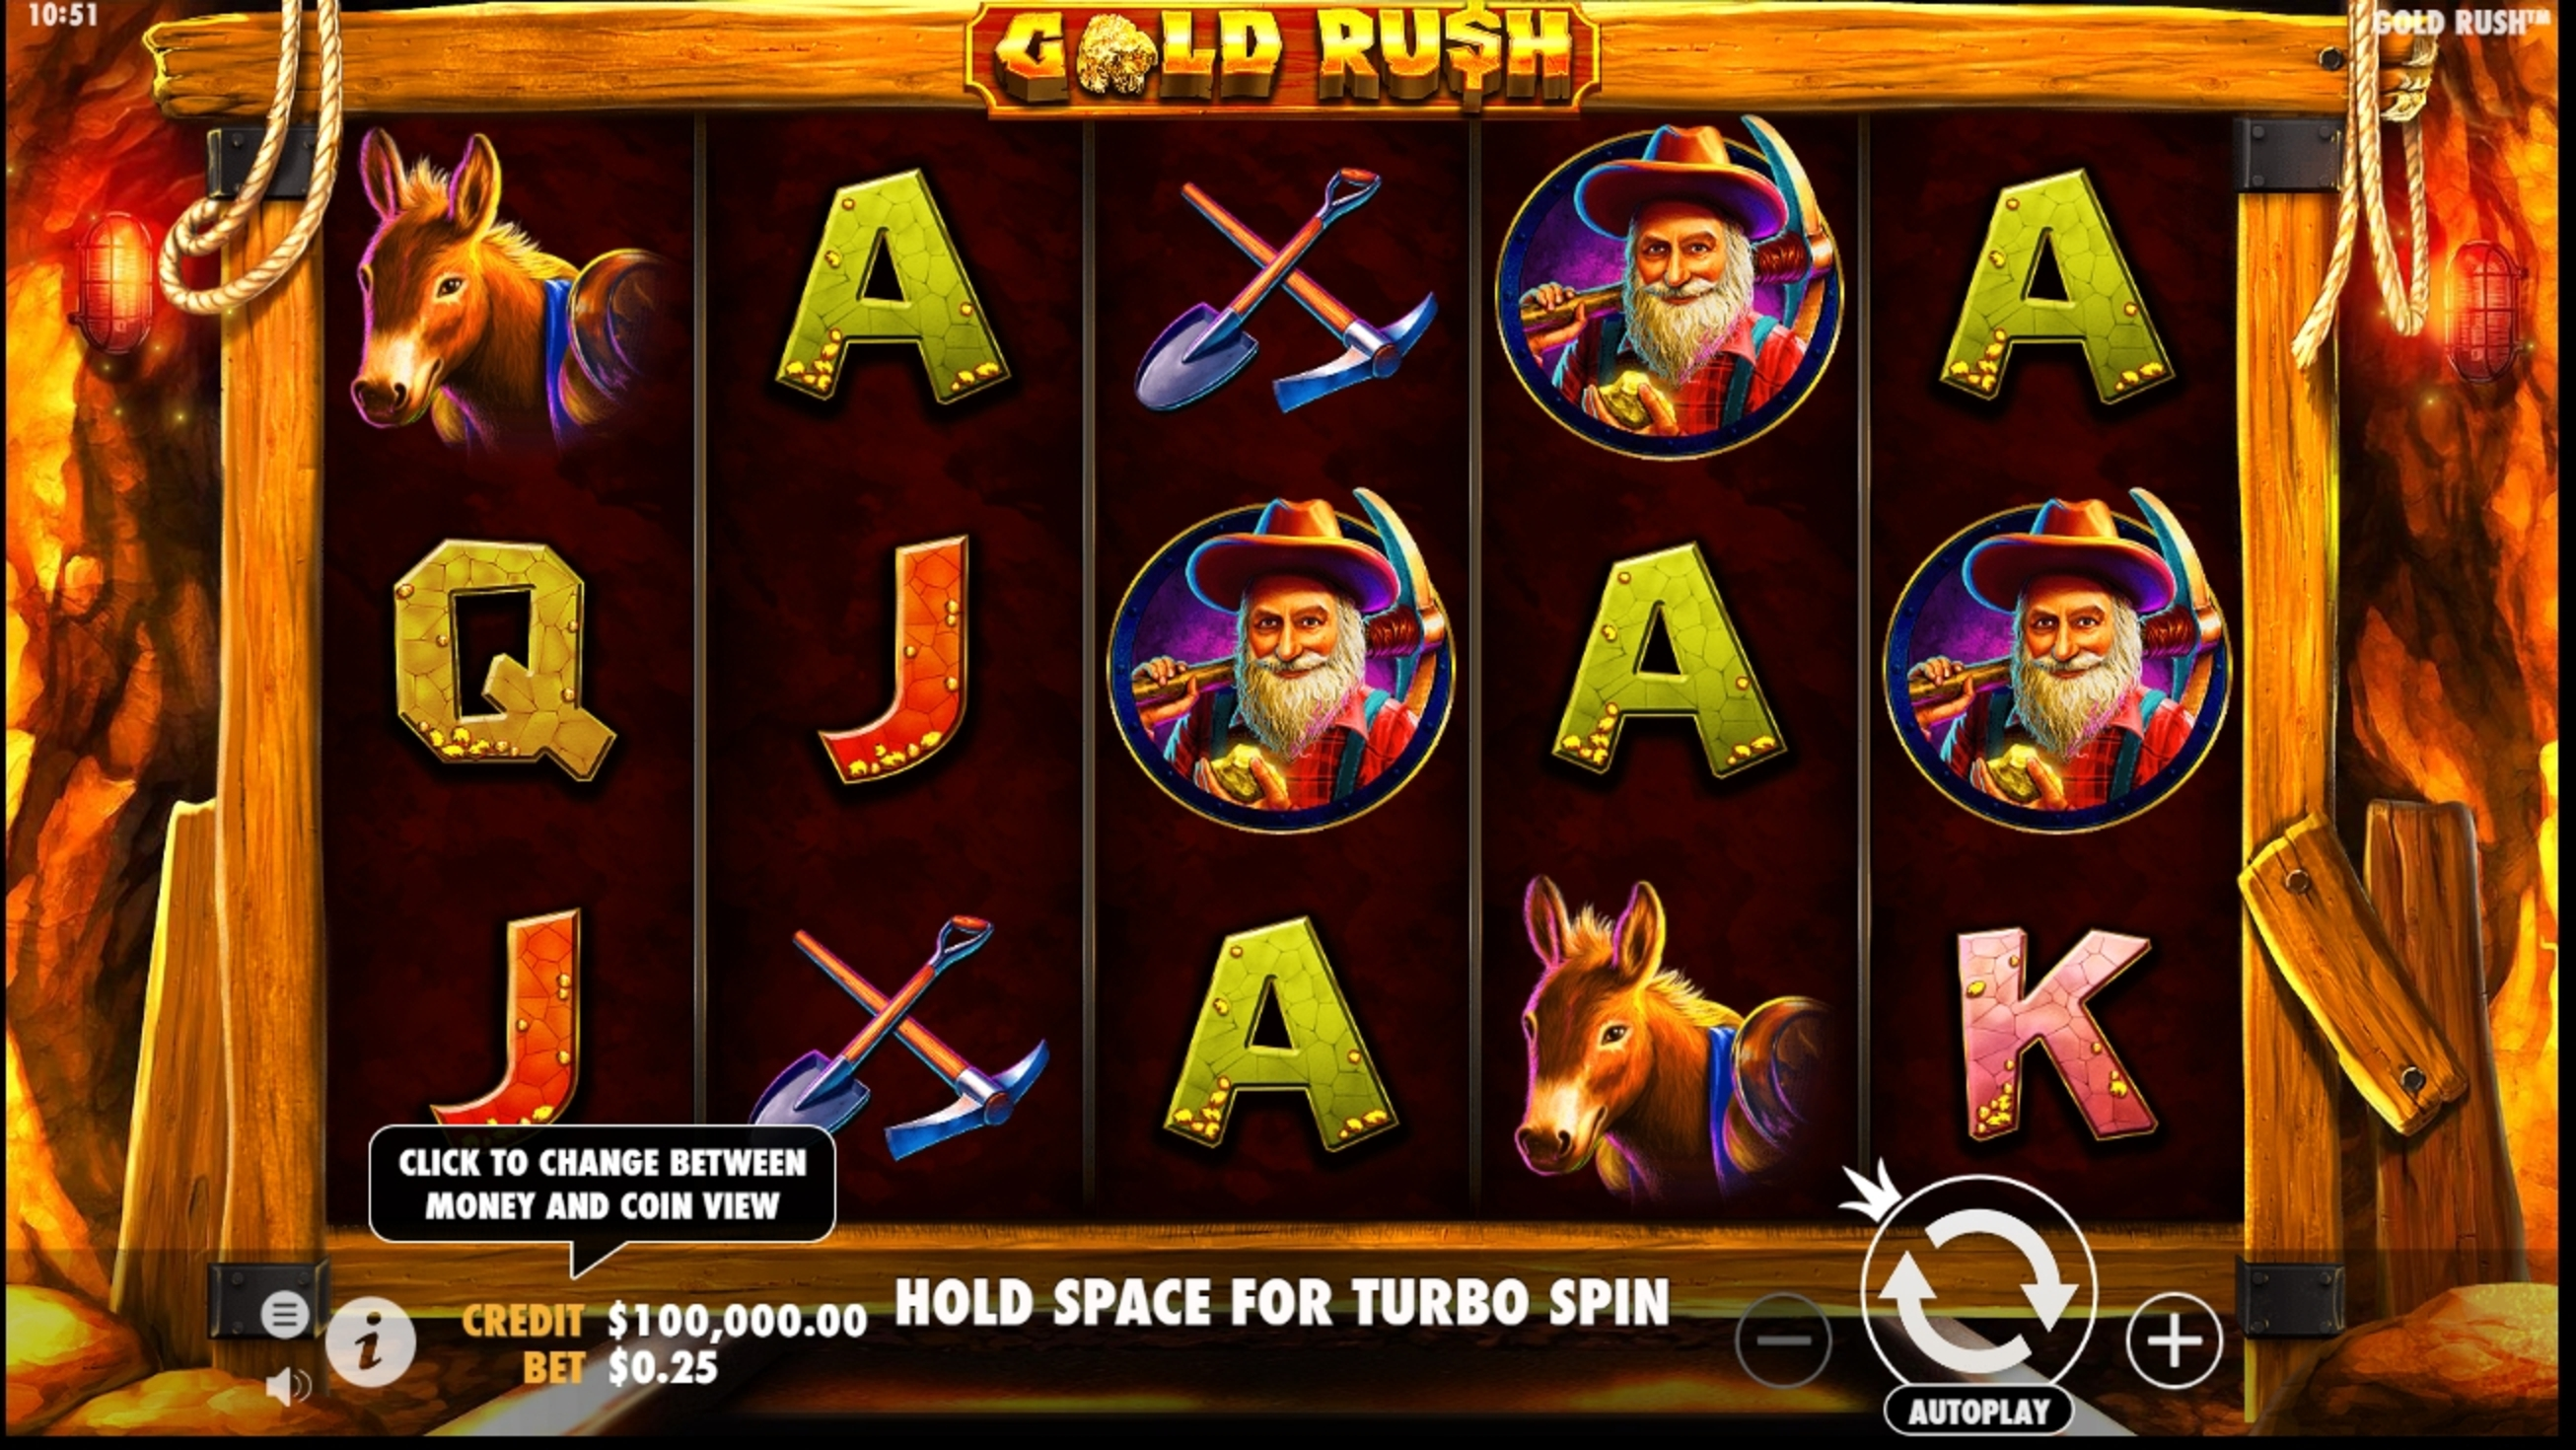 Reels in Gold Rush (NetEnt) Slot Game by NetEnt